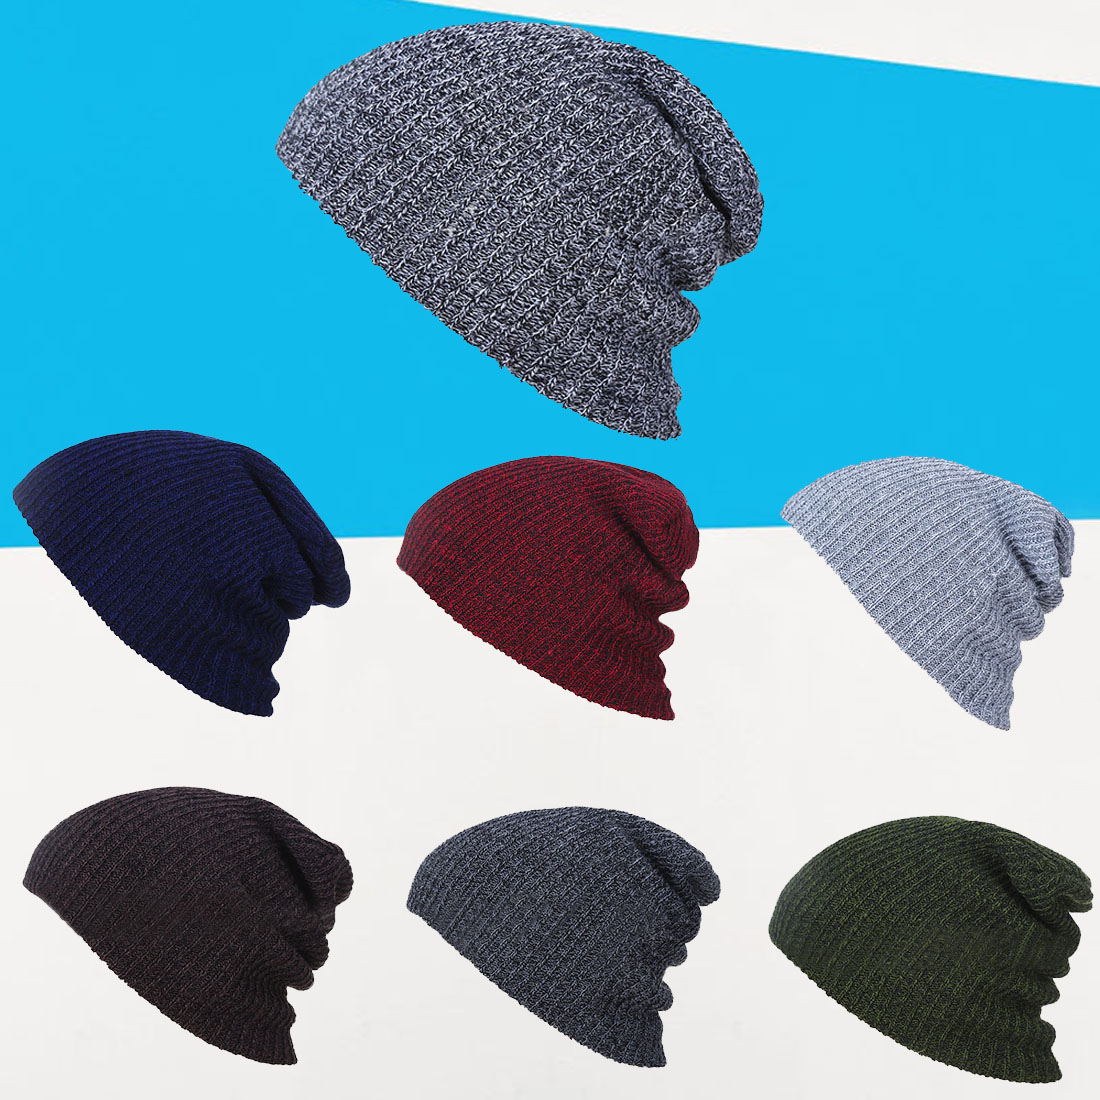 Hot Knit Men's Baggy Beanie Oversize Winter Warm Hats Slouchy Chic Crochet Knitted Cap For Women Girl's Hat Thick Female Cap winter casual cotton knit hats for women men baggy beanie hat crochet slouchy oversized cap warm skullies toucas gorros